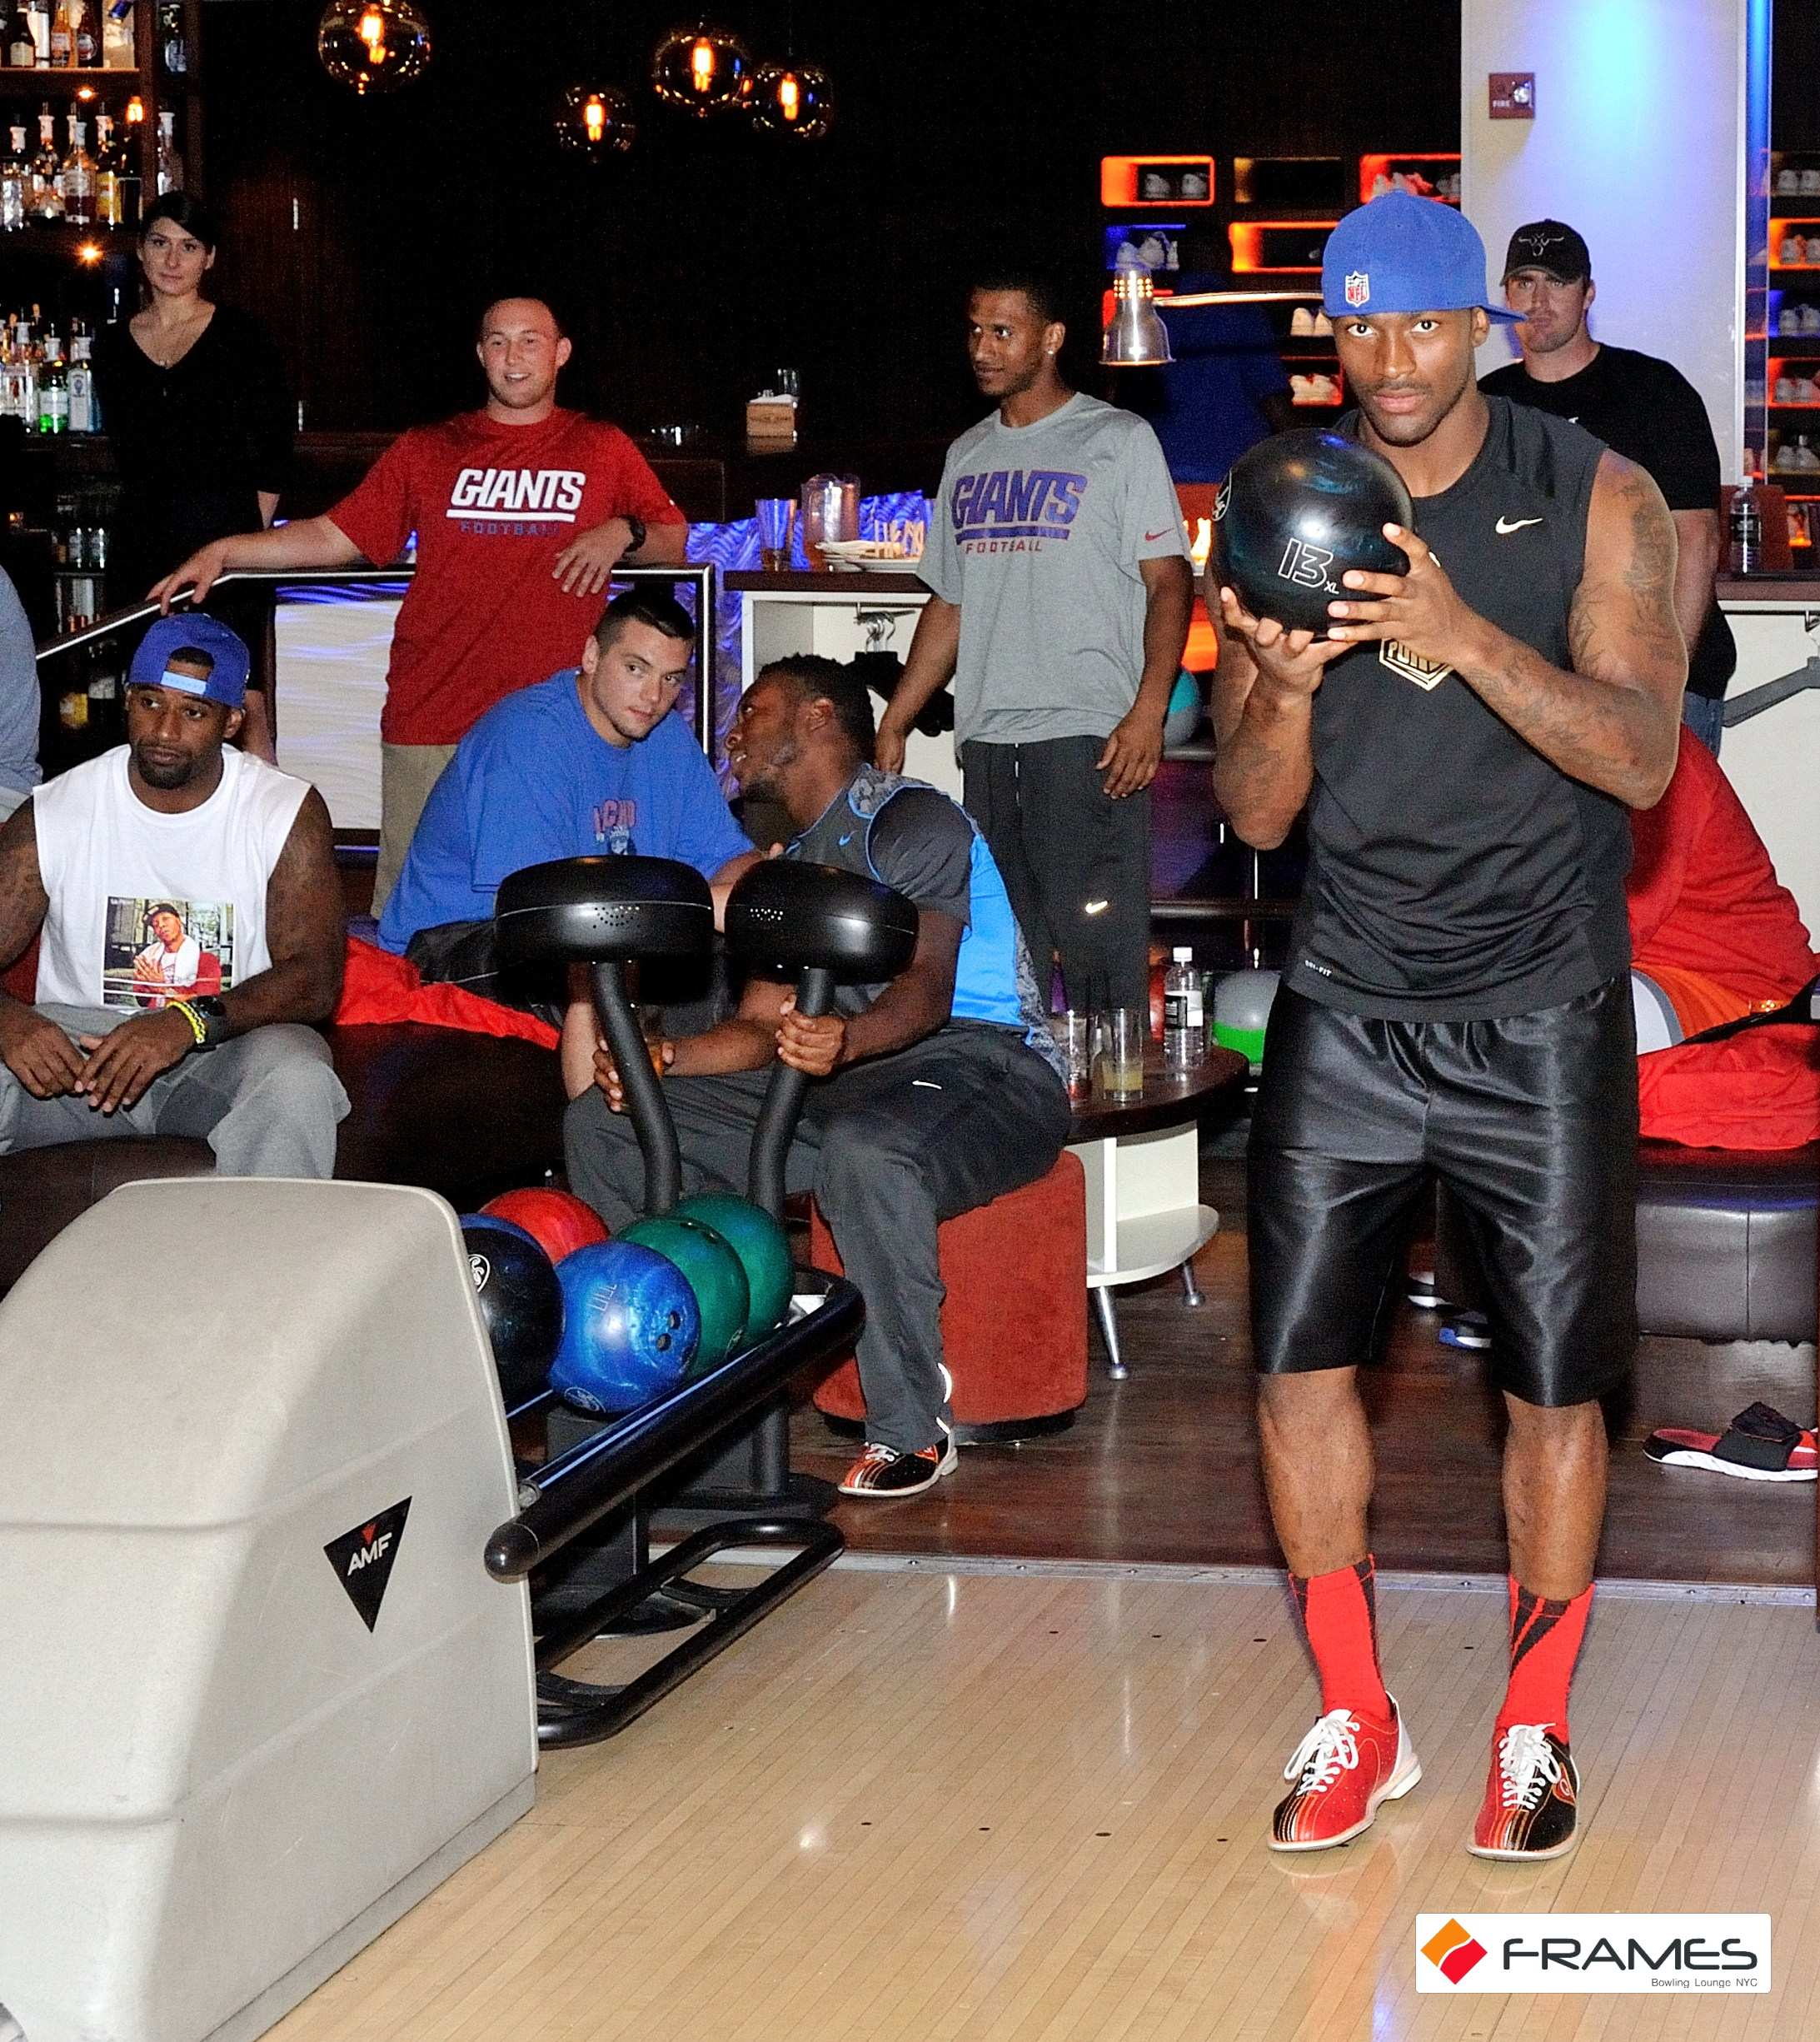 Entire NY GIANTS Football Team Celebrate a Boys Night Out at Frames ...